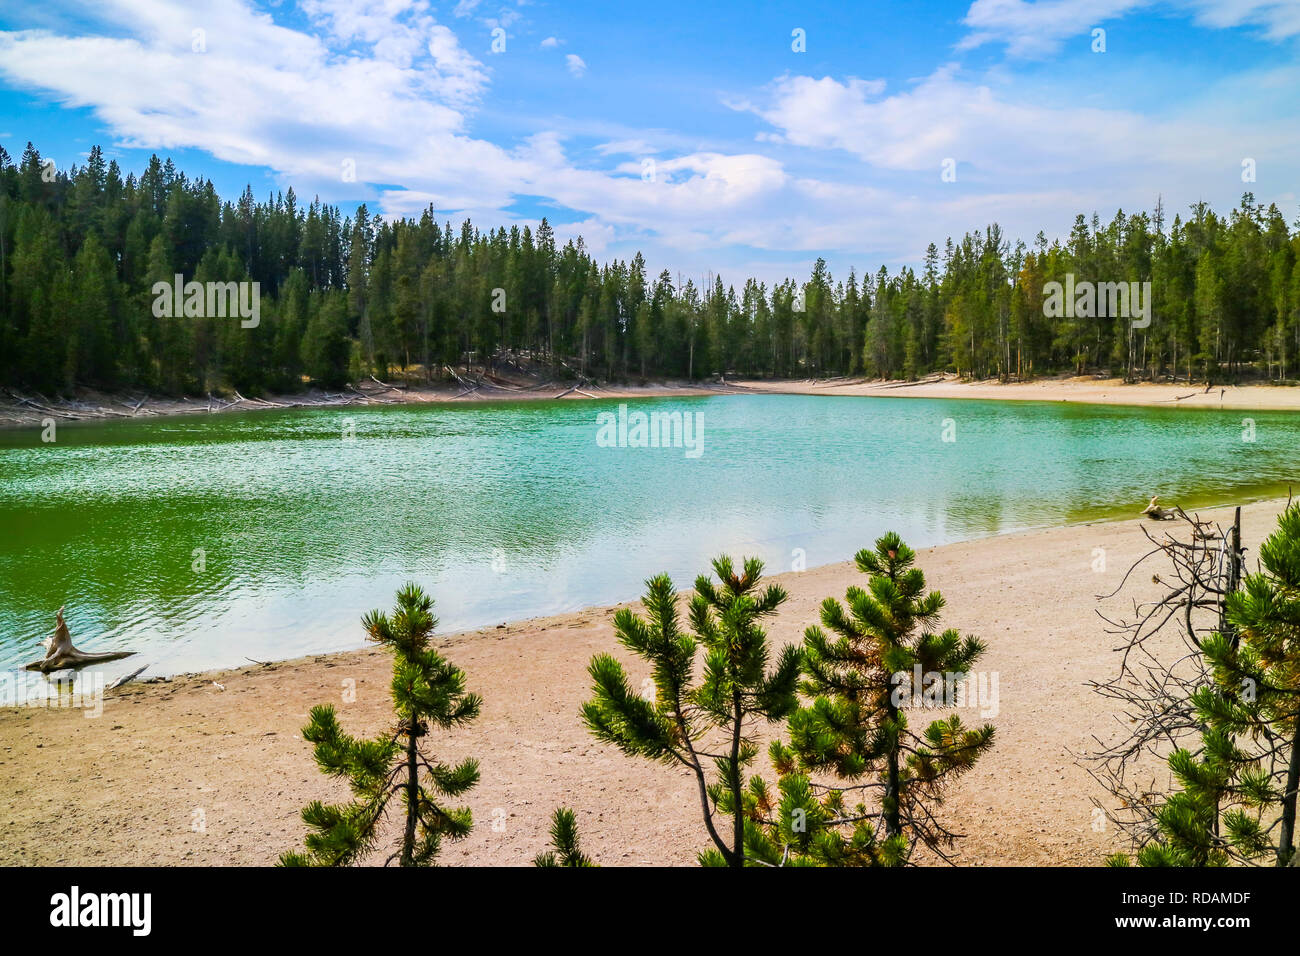 A very small crystal clear lake in the forest of Yellowstone